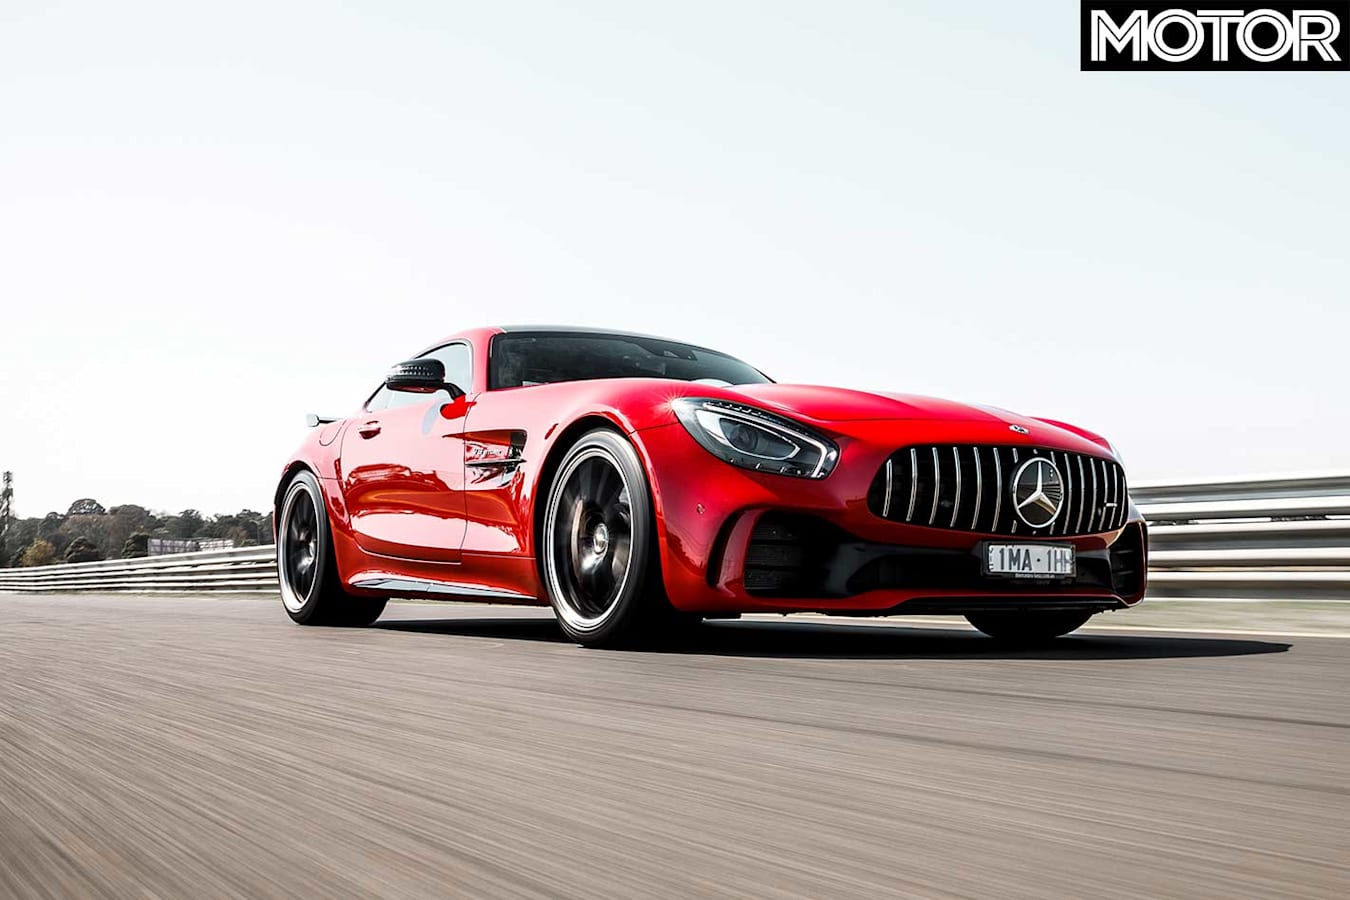 2019 Mercedes AMG GT R 12 Hours Review Track Straight Performance Jpg